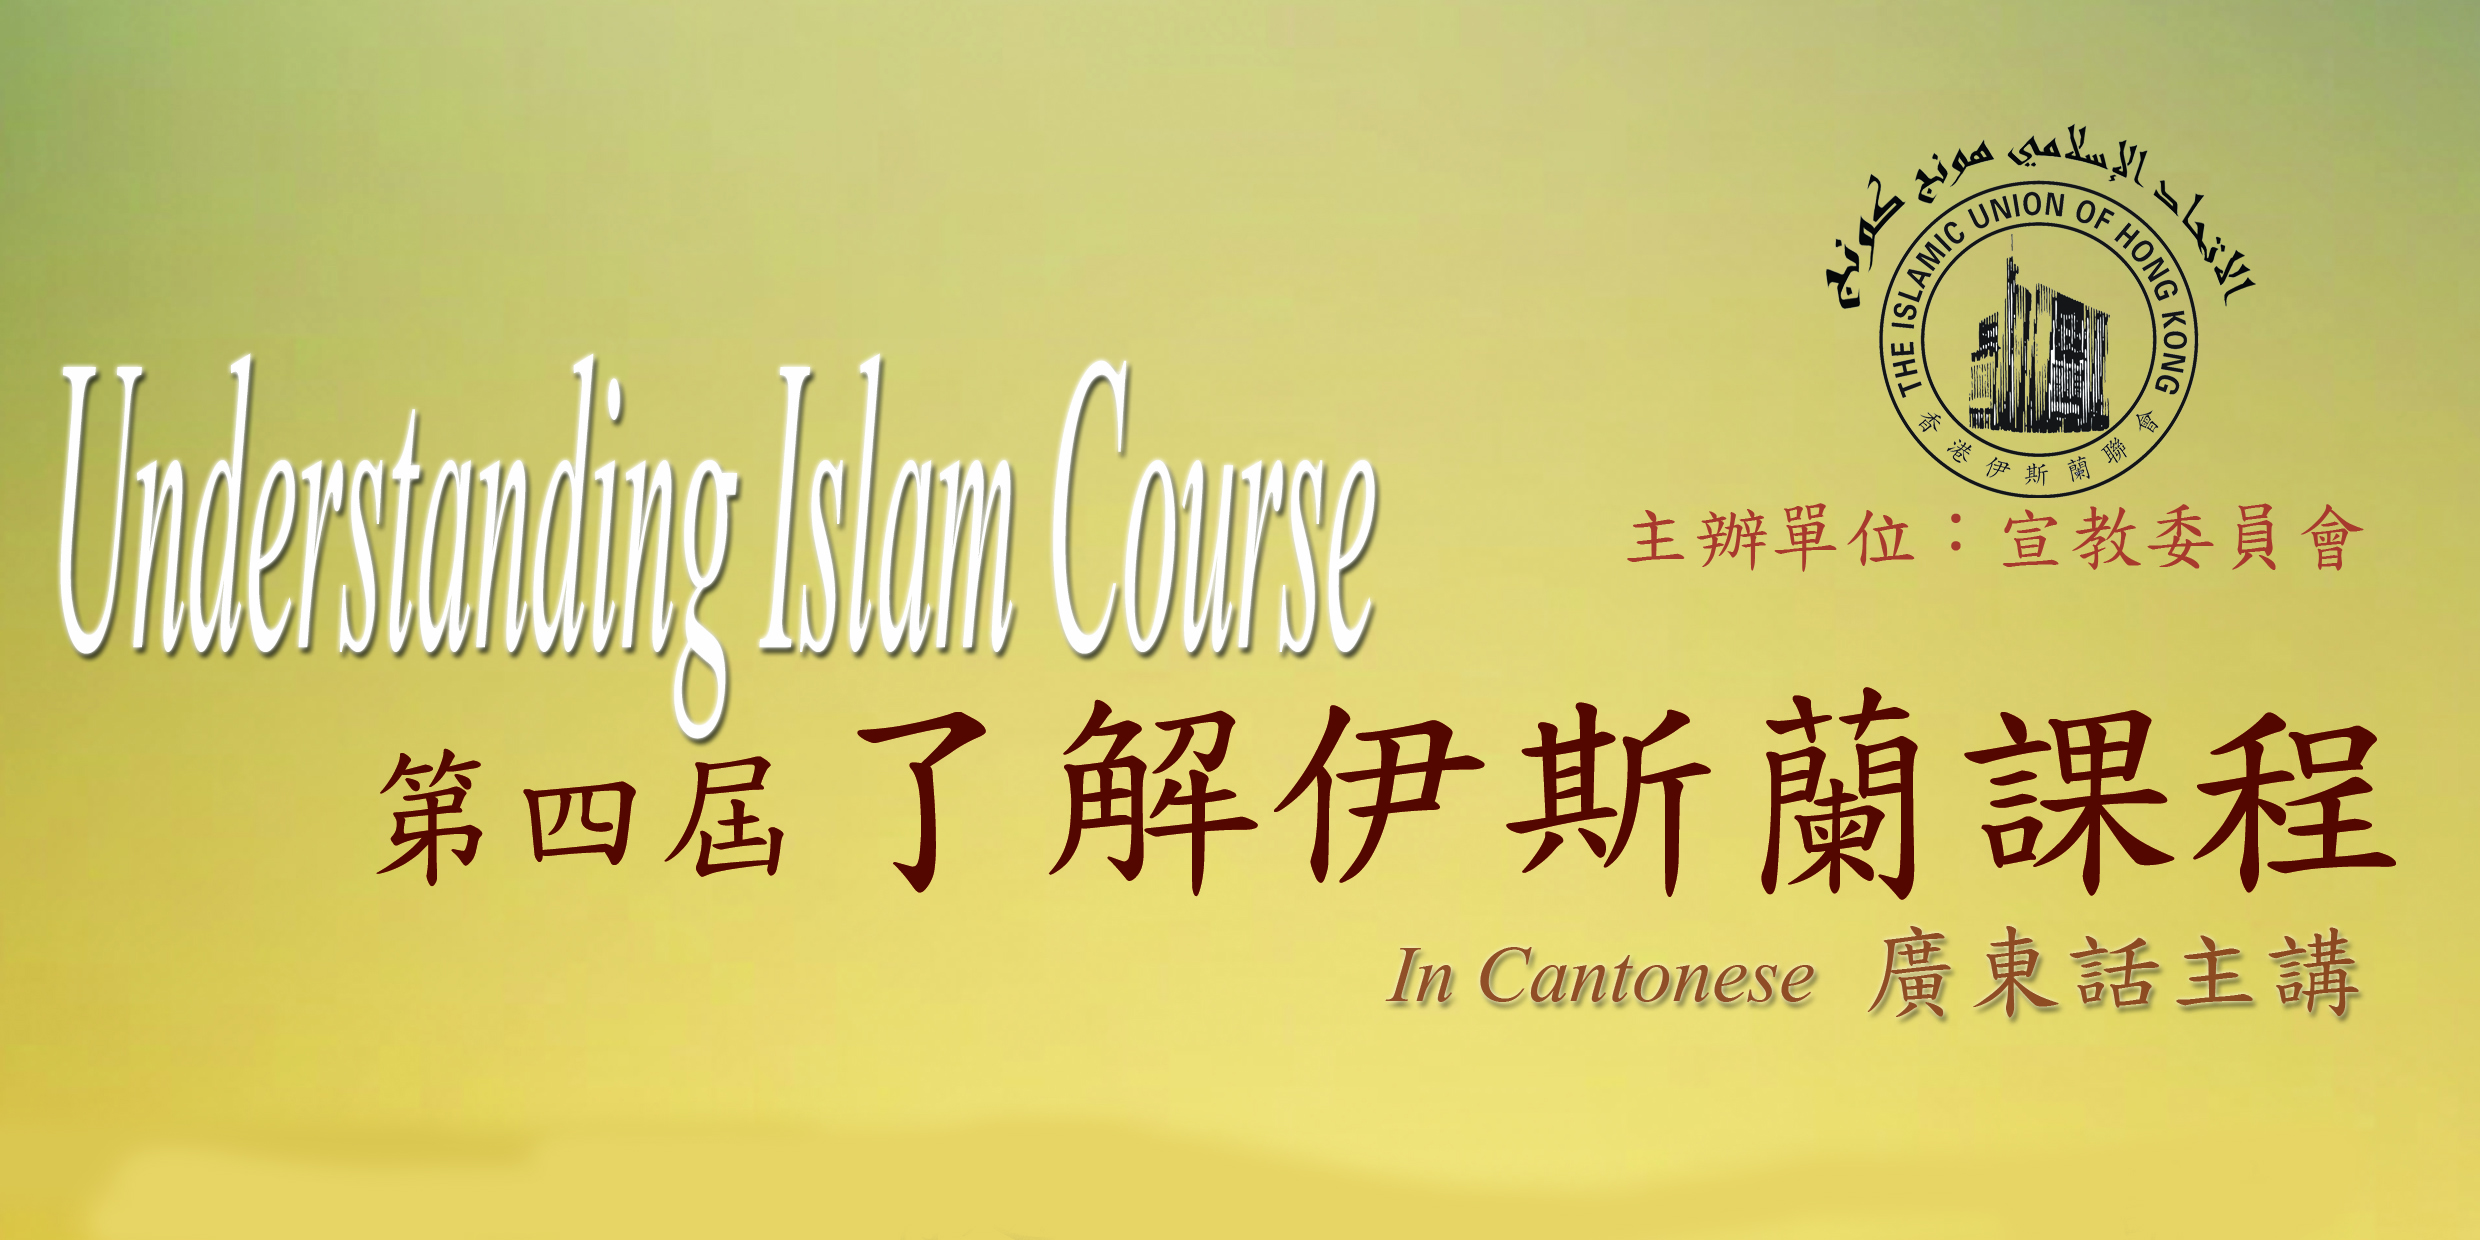 Get to know Islam Courses